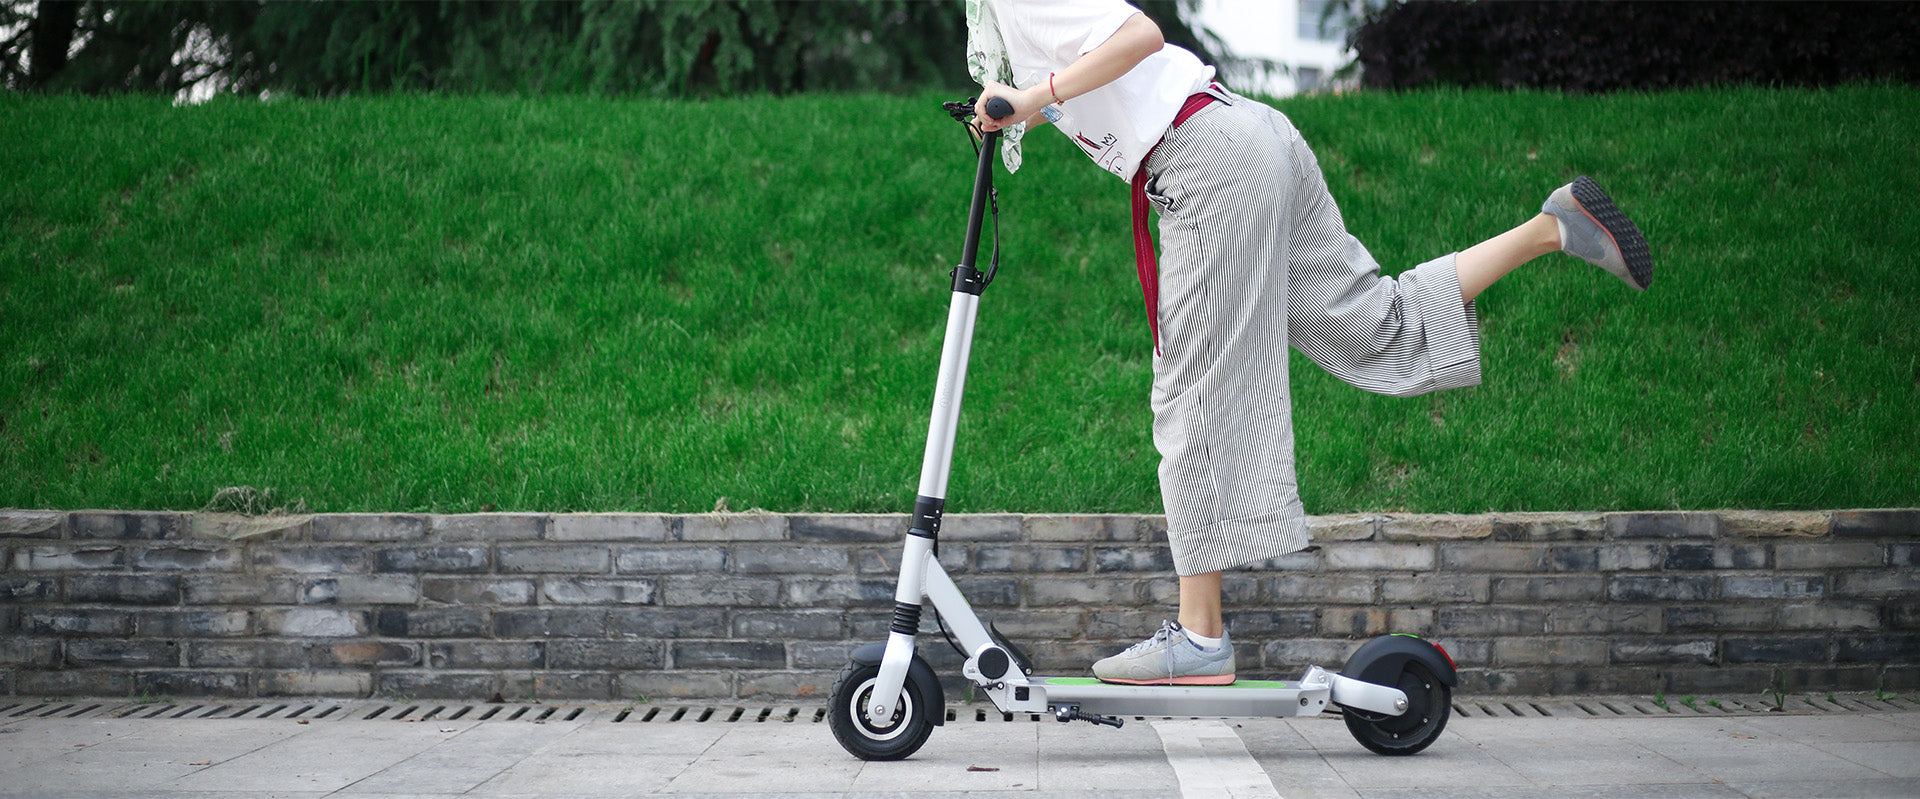 how to maximise the range of your electric scooter